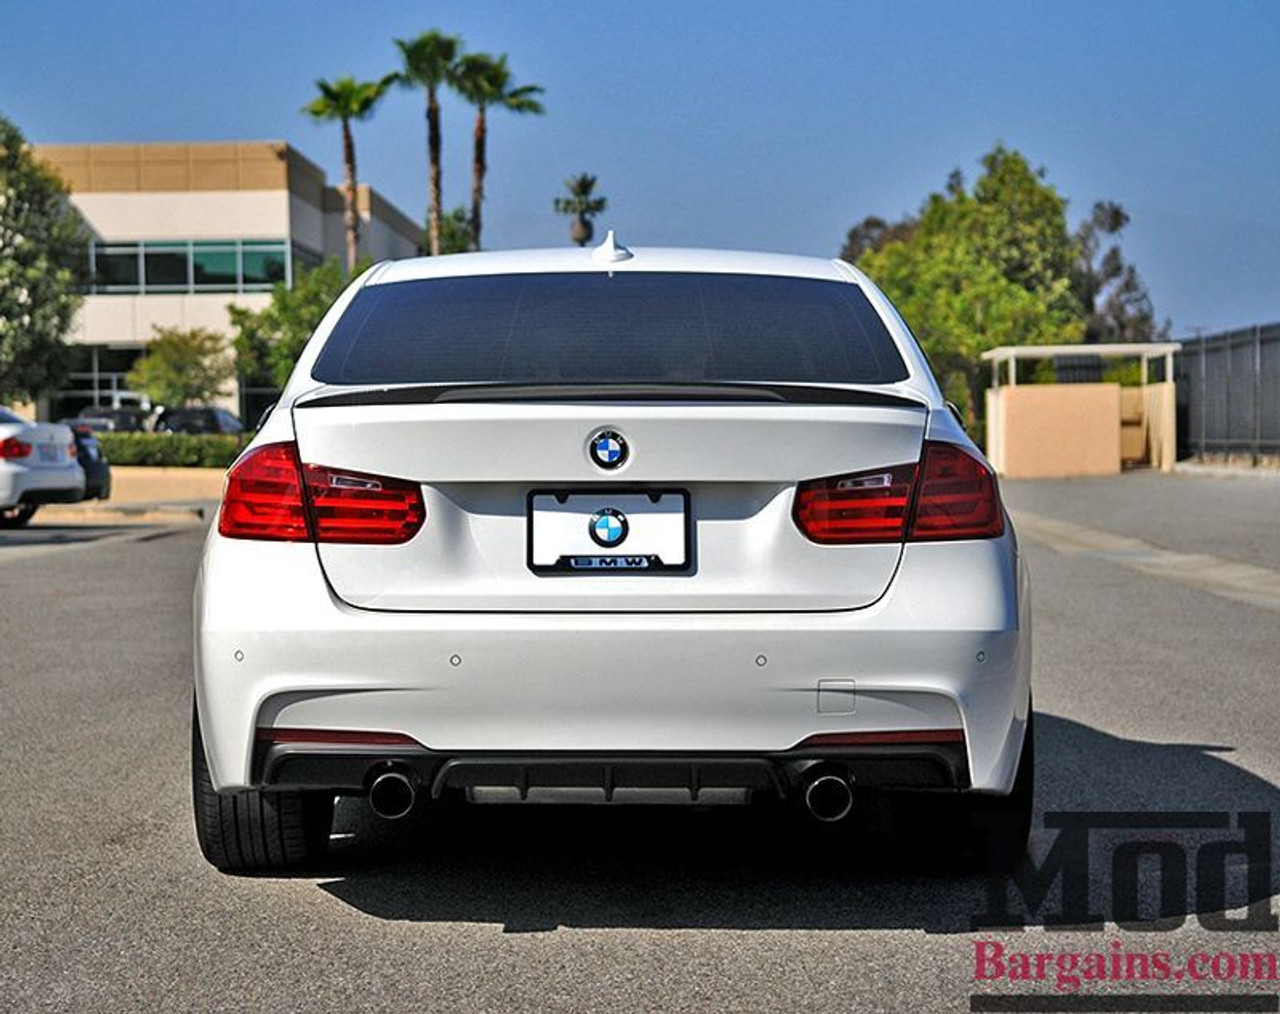 Carbon Fiber Rear Diffuser For 2011 17 Bmw 328i 335i M Sport F30 Performance Style Dual